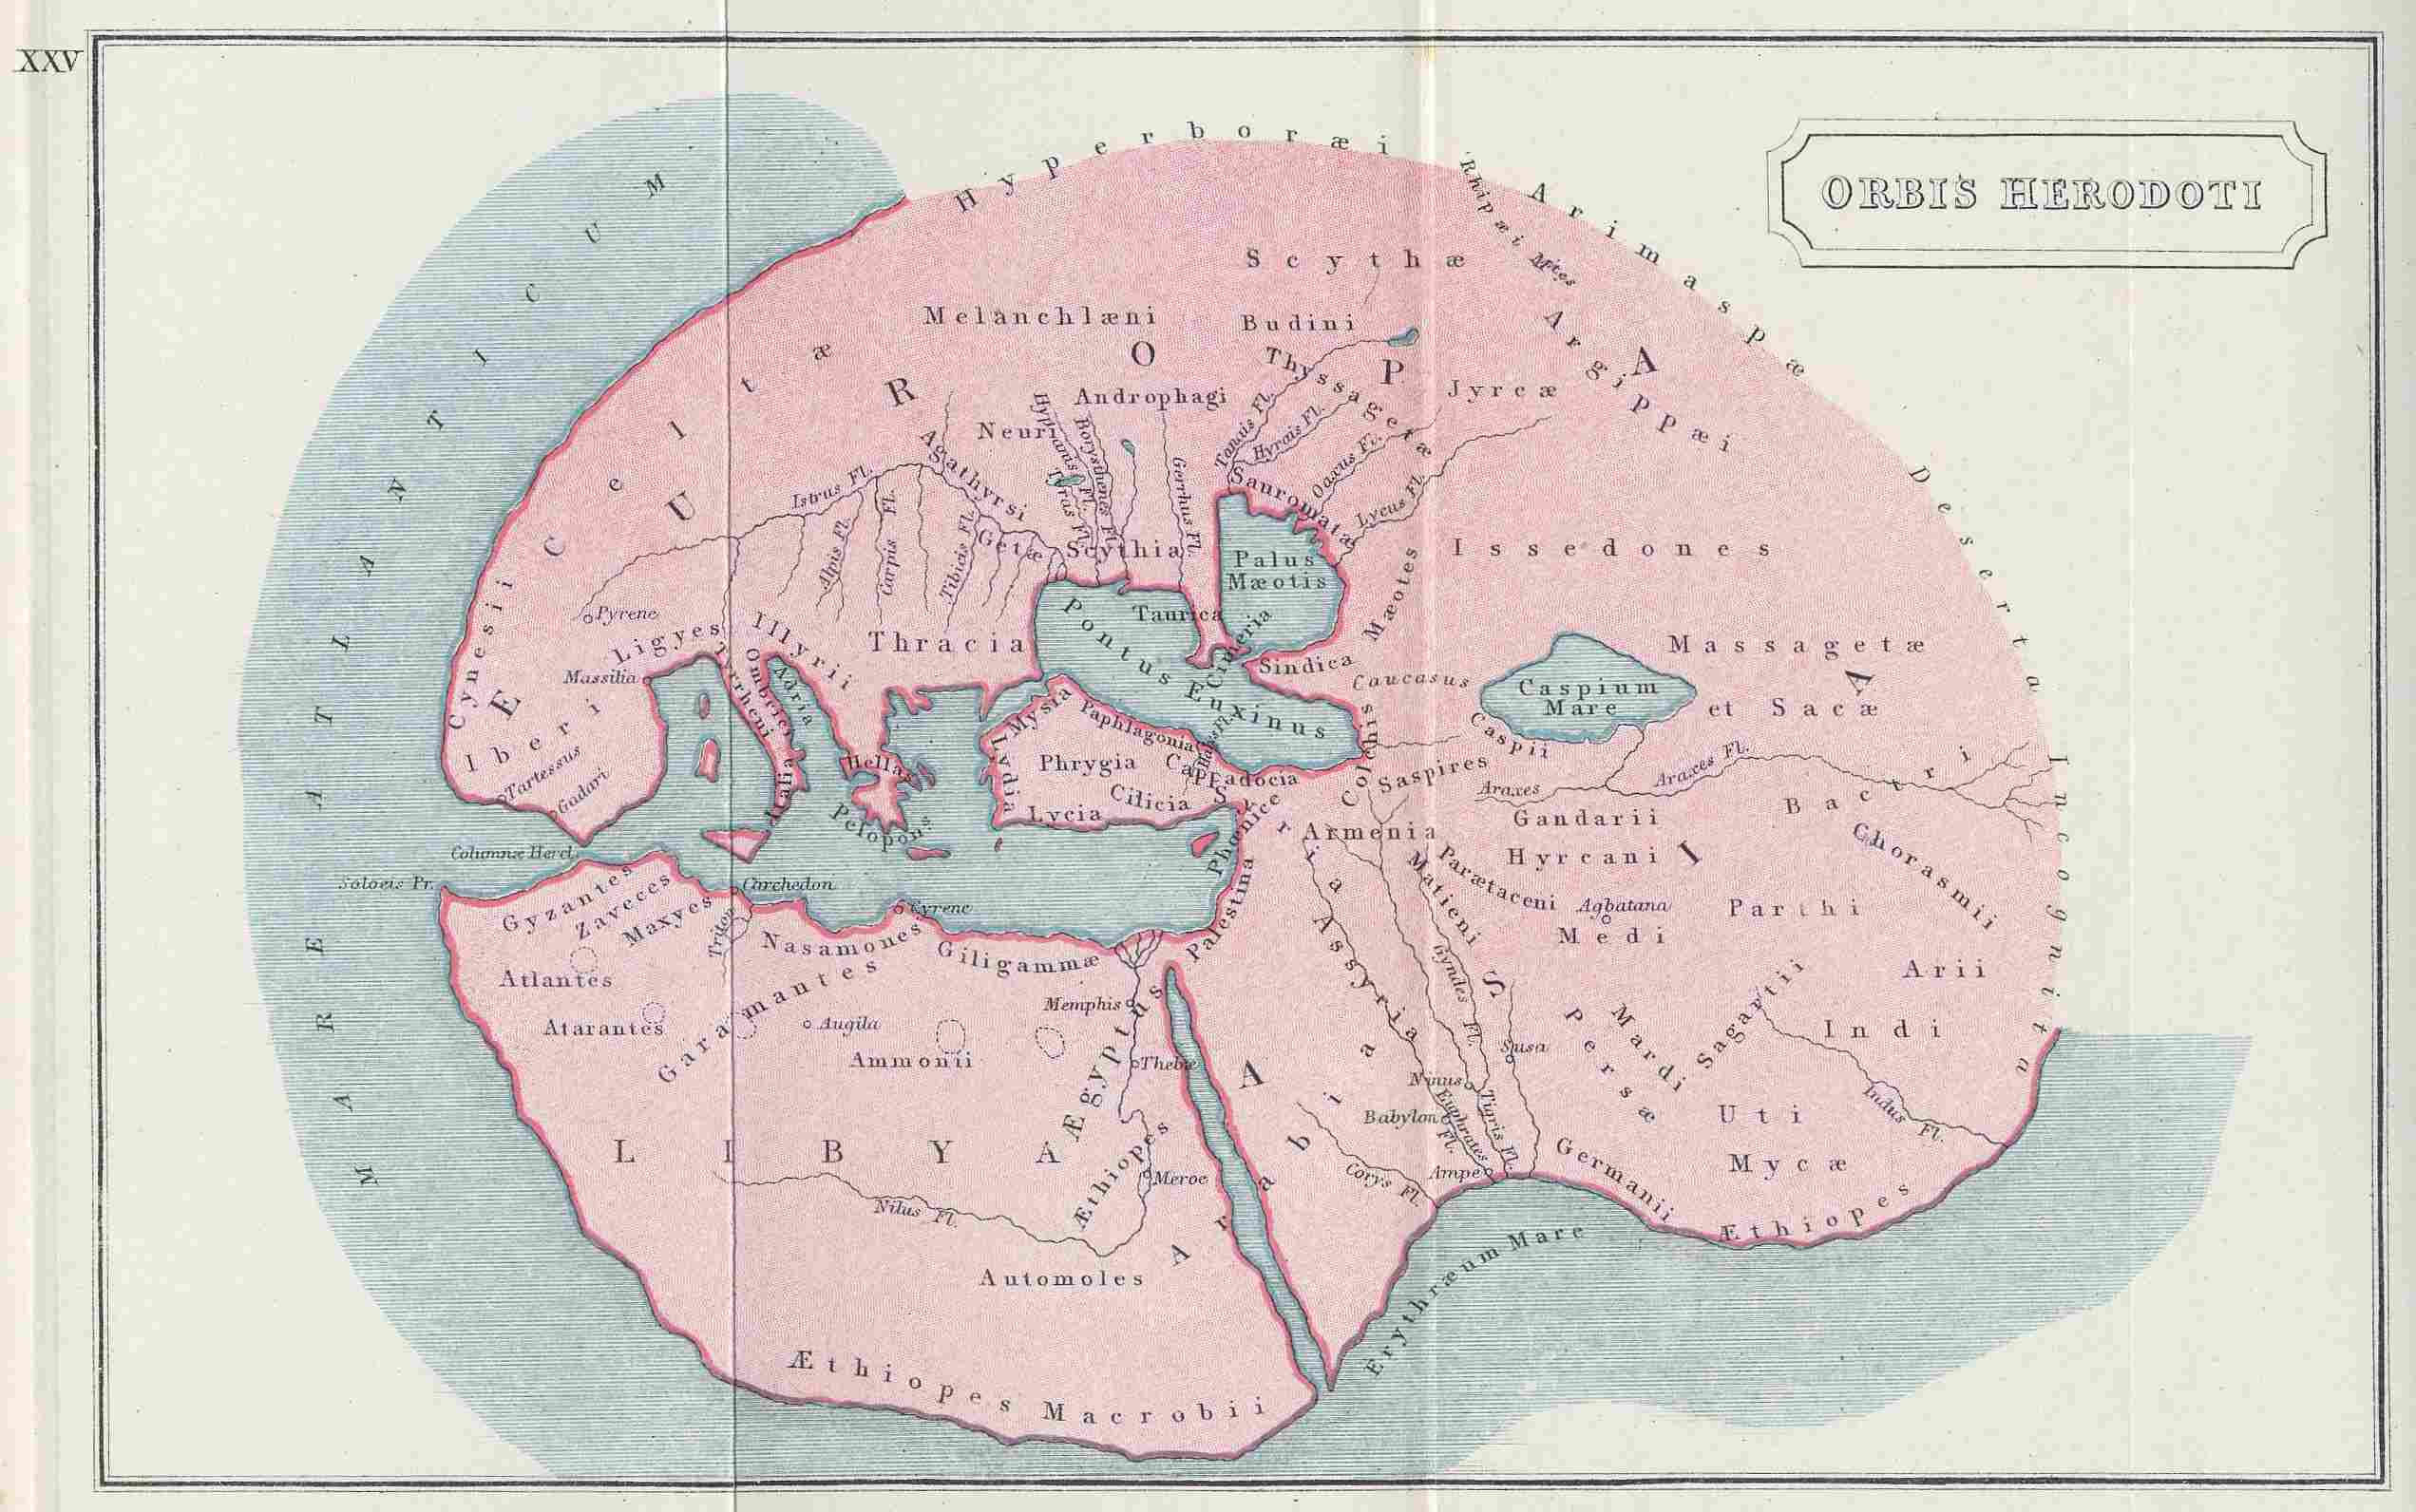 Atlas of ancient and classical geography samuel butler list of maps gumiabroncs Gallery